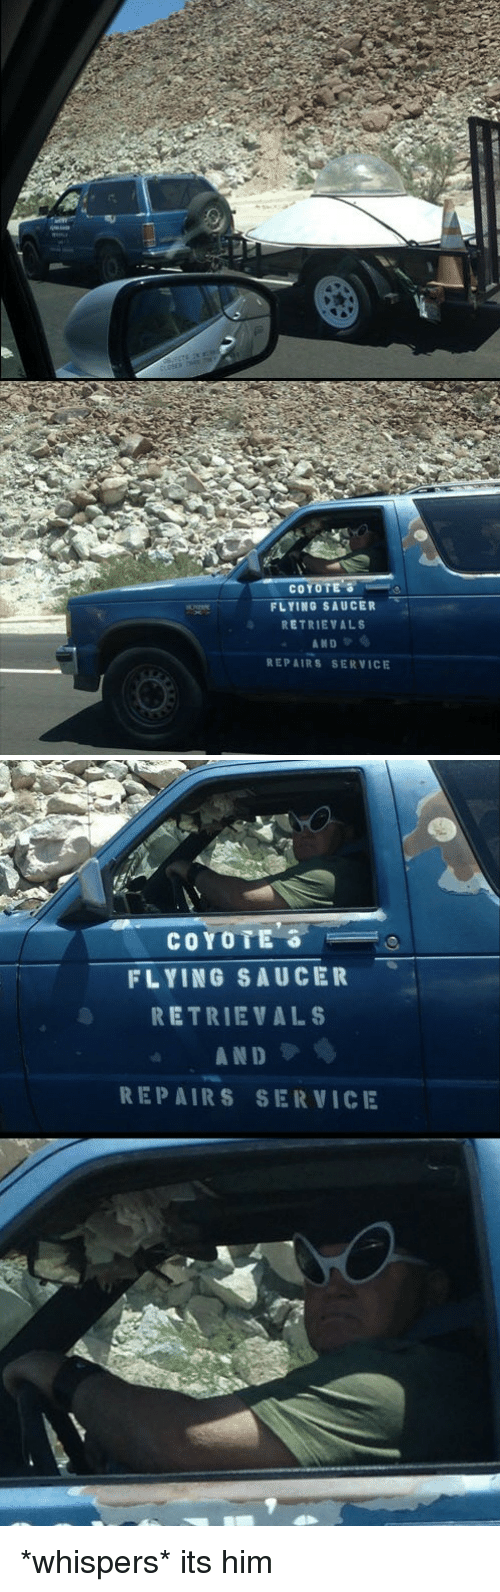 Coyote, Him, and Service: COYOTE 3  FLYING SAUCER  RETRIEVALS  REPAIRS SERVICE   COYOTE  FLYING SAUCER  RETRIEVALS  A N D  REPAIRS SERVICE *whispers* its him